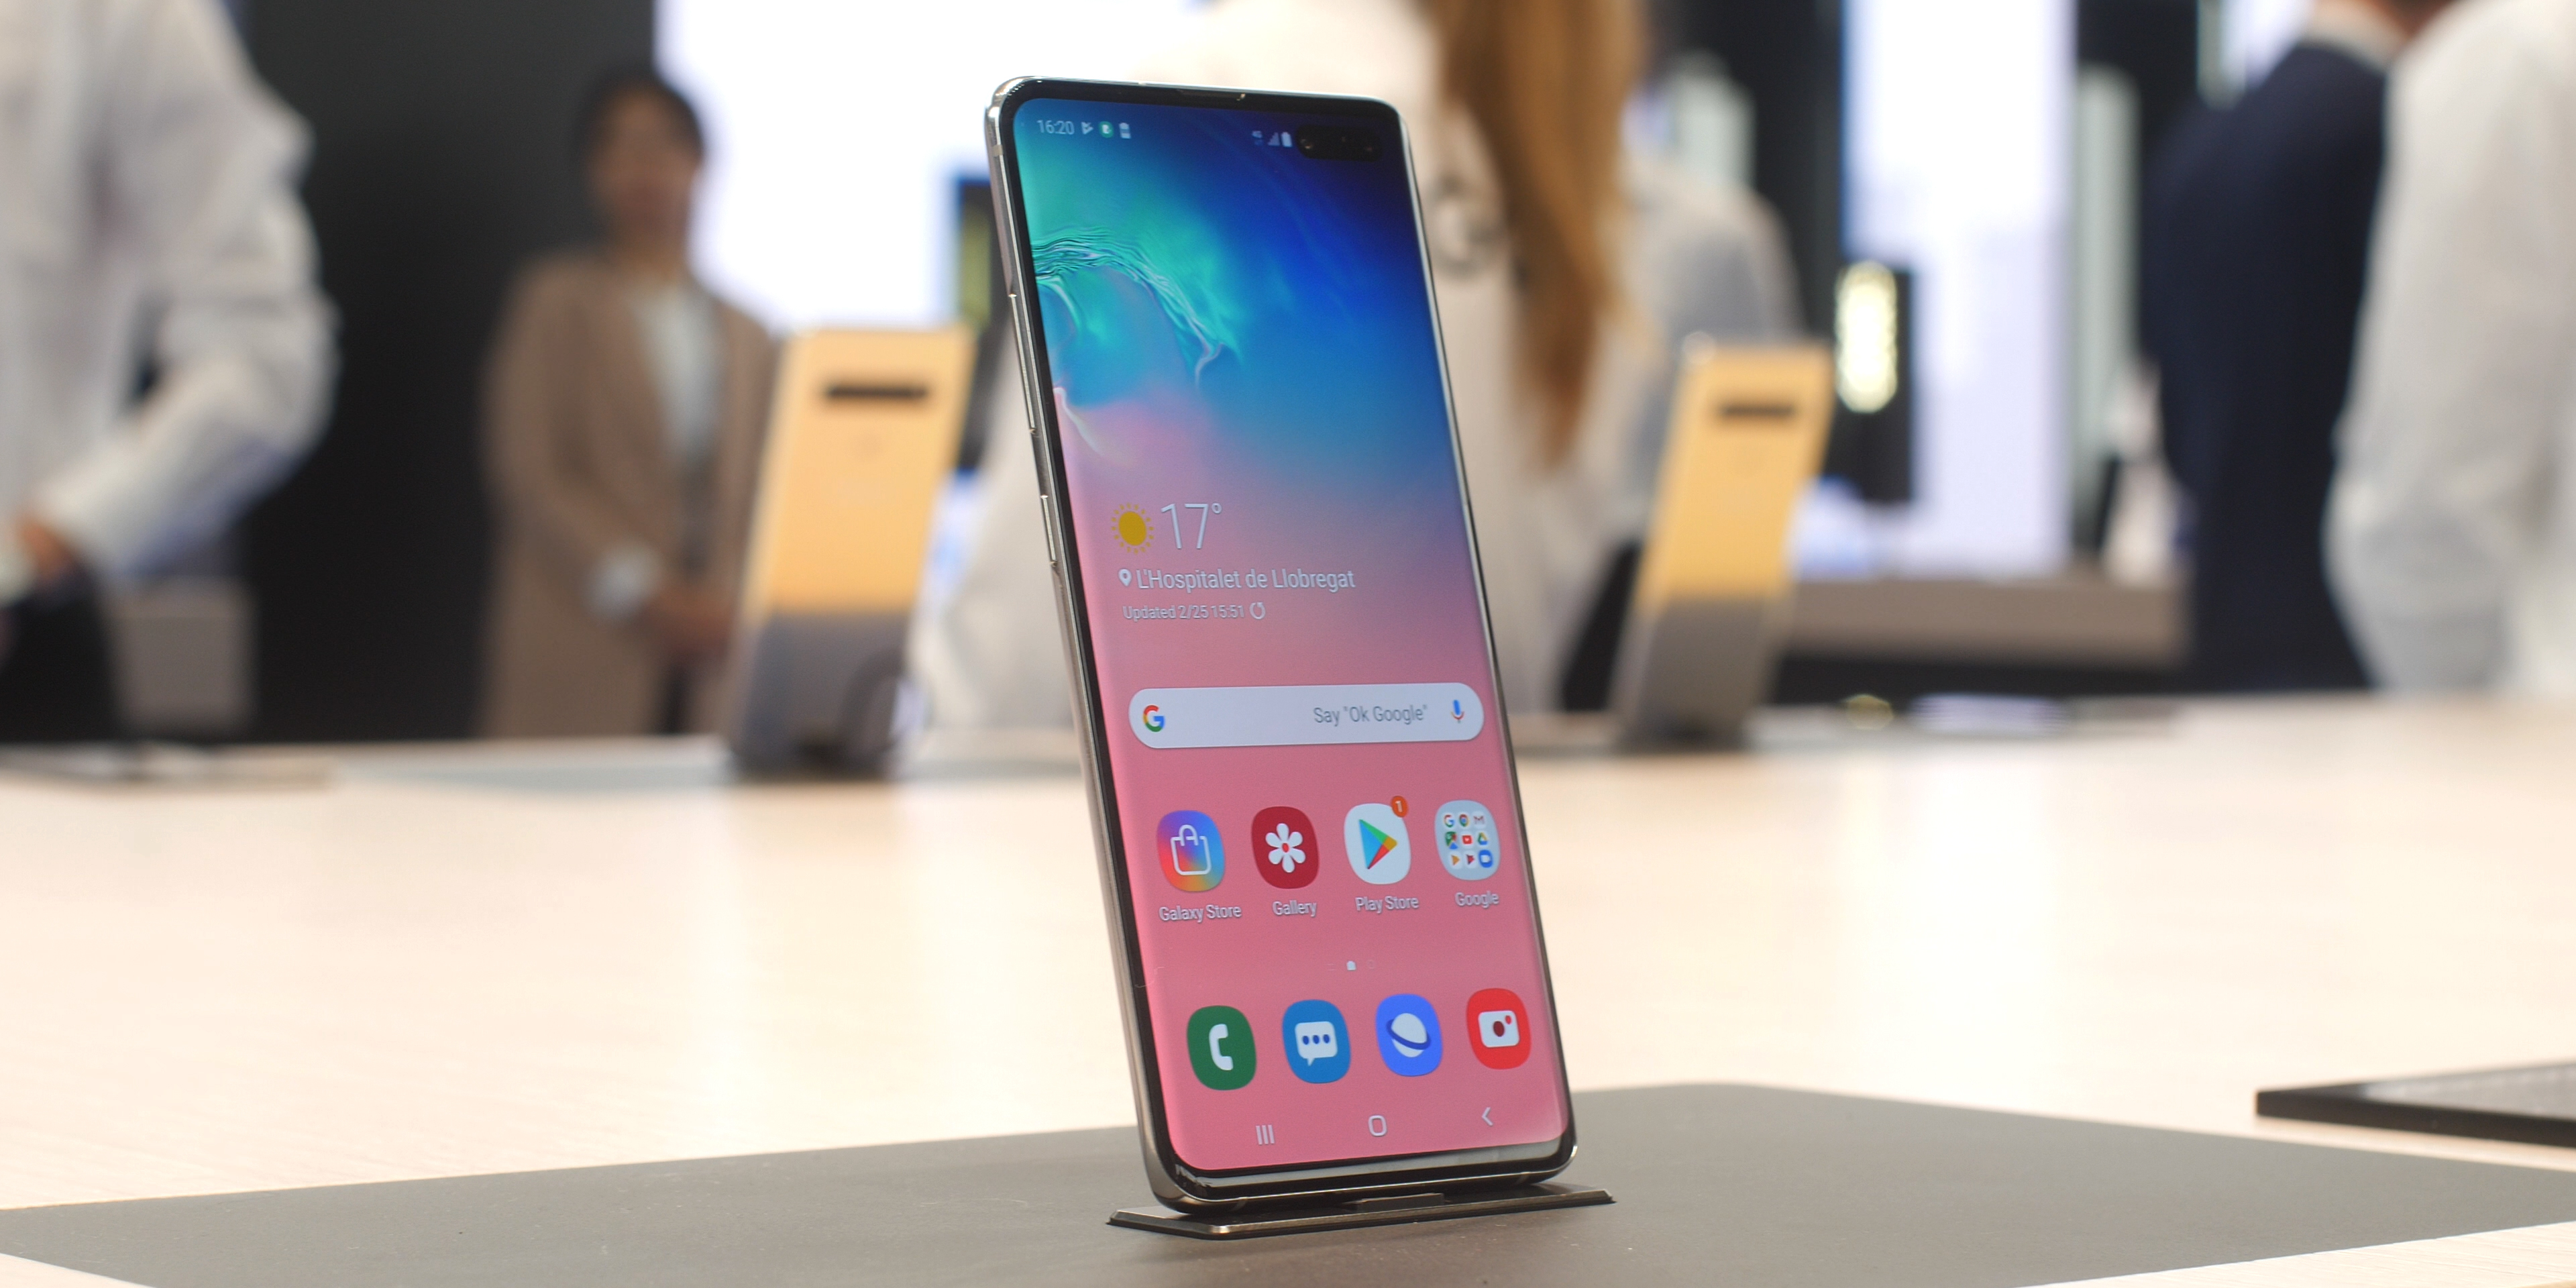 The Galaxy S10 5G now has an expected release date of April 5